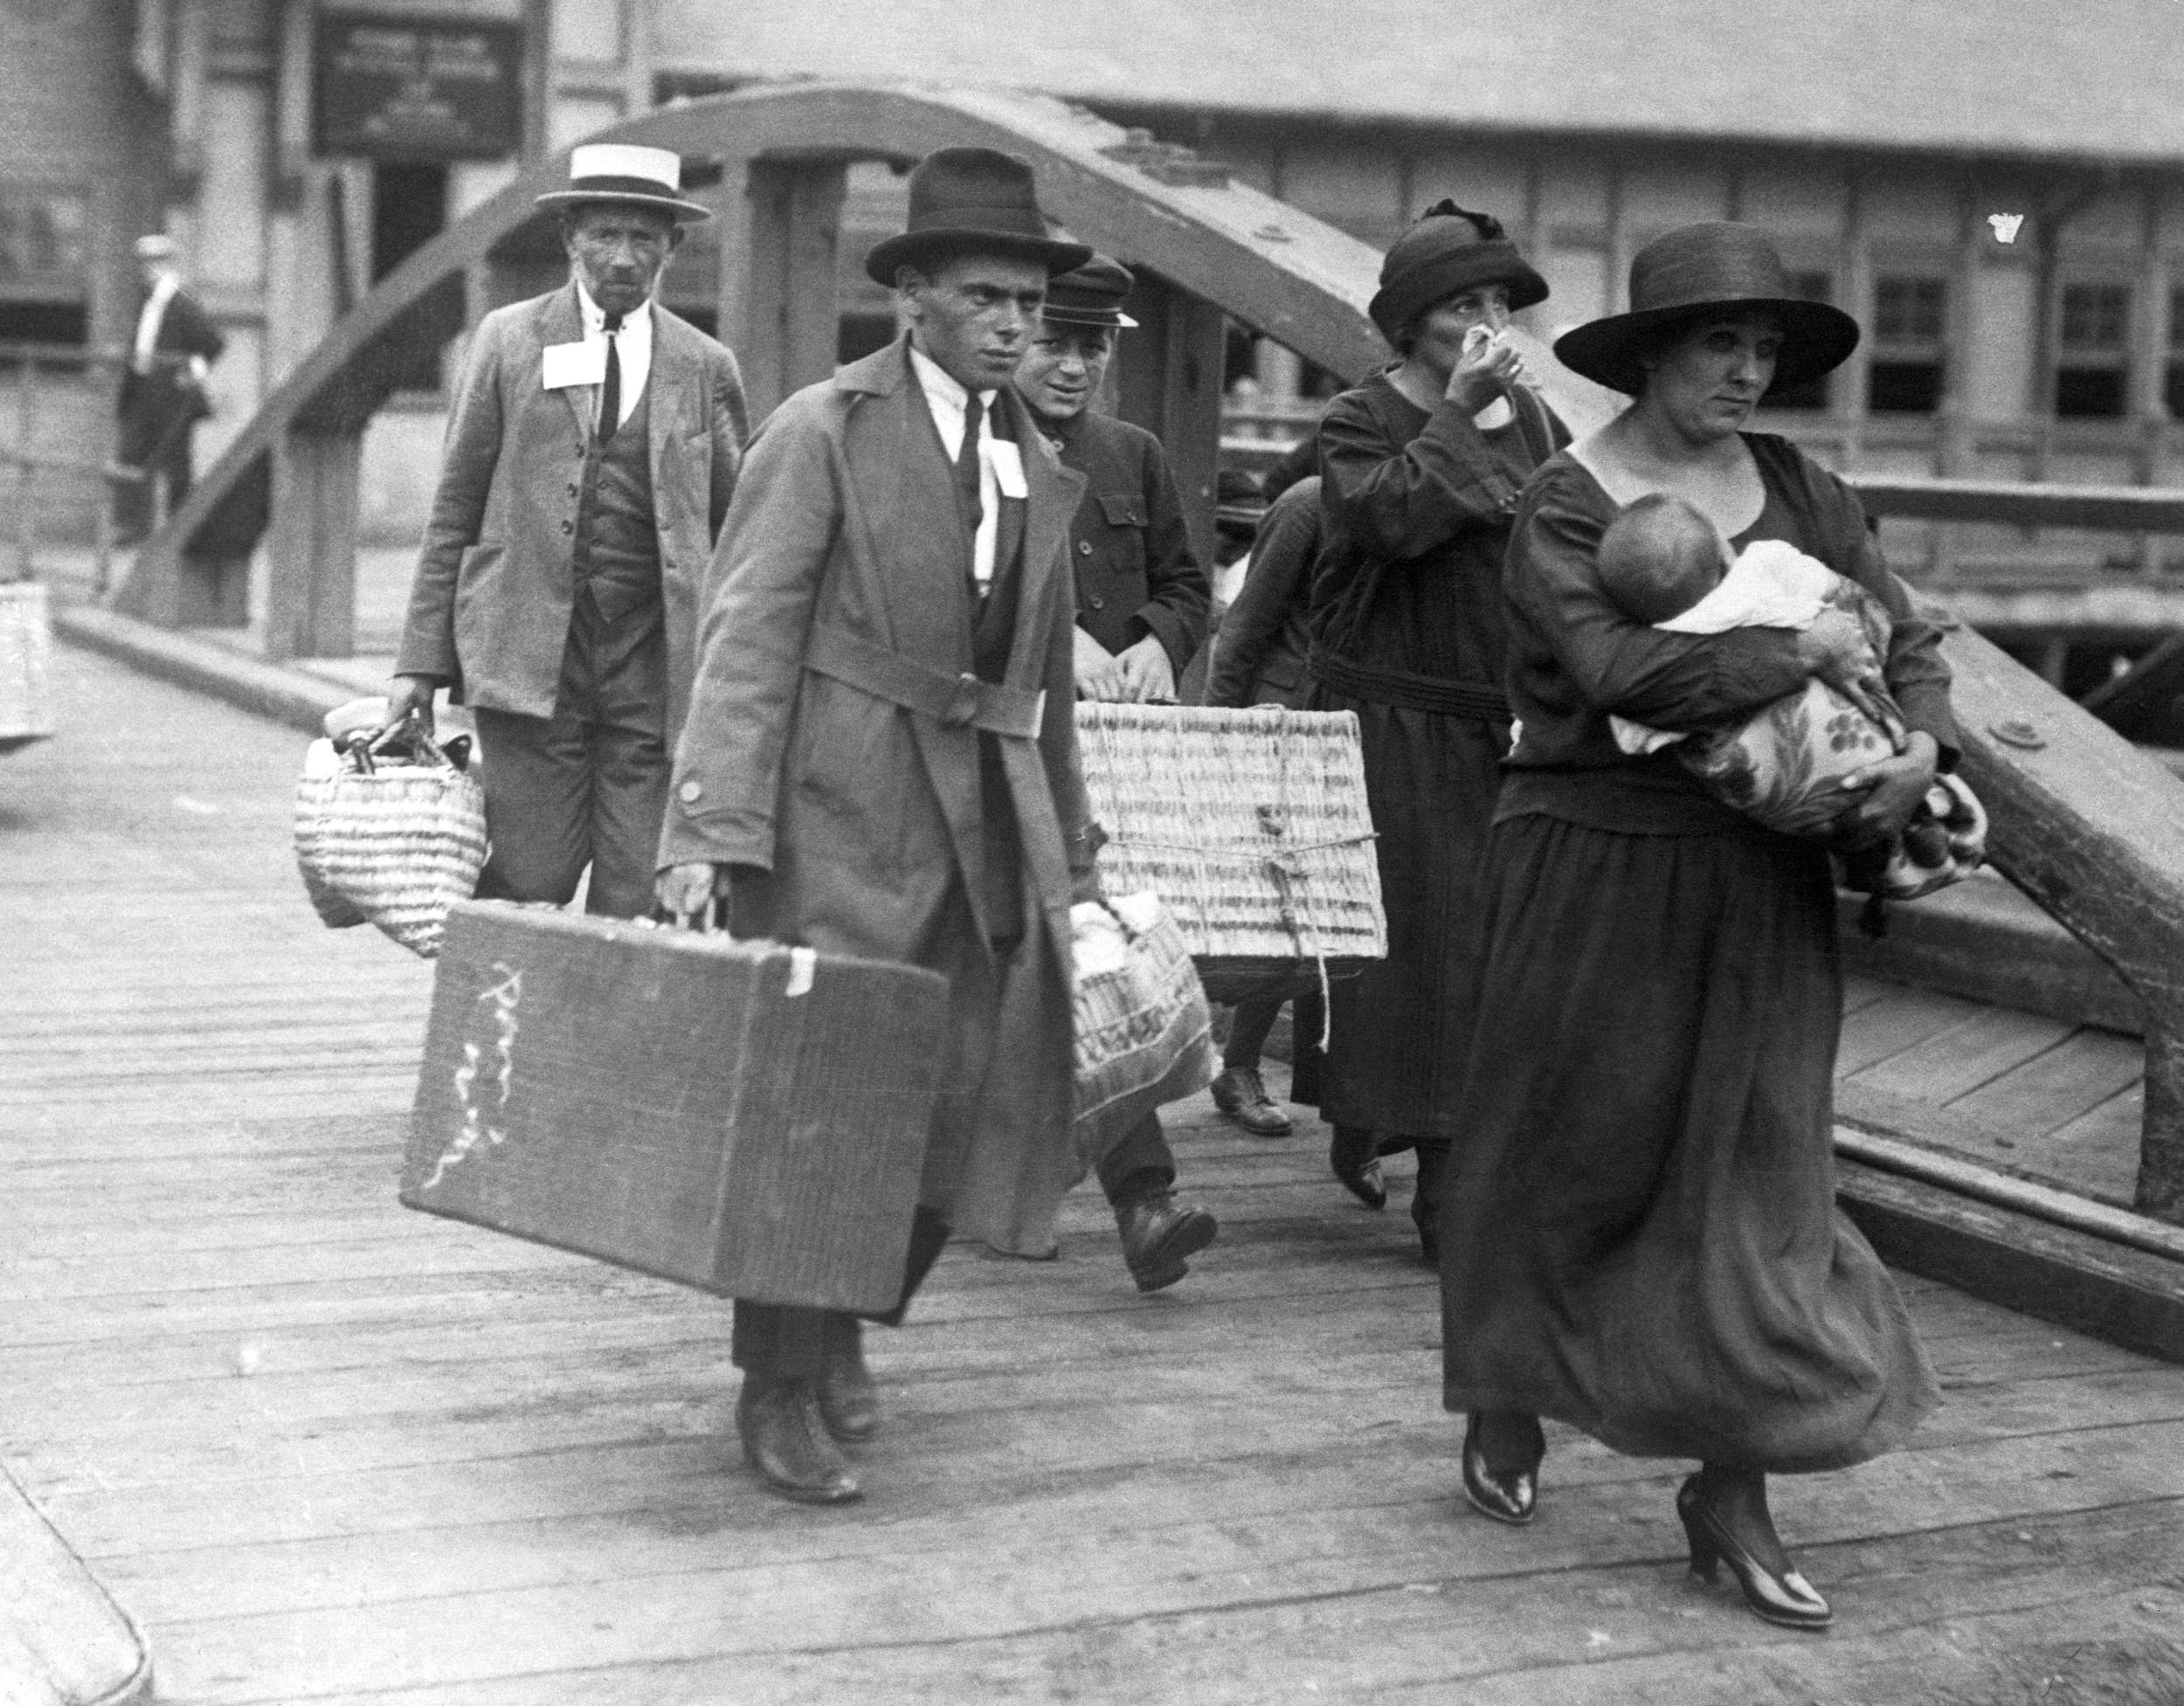 Ship loaded with immigrants, coming to New York. A Greek family embarking on Ellis Island, to come to America.